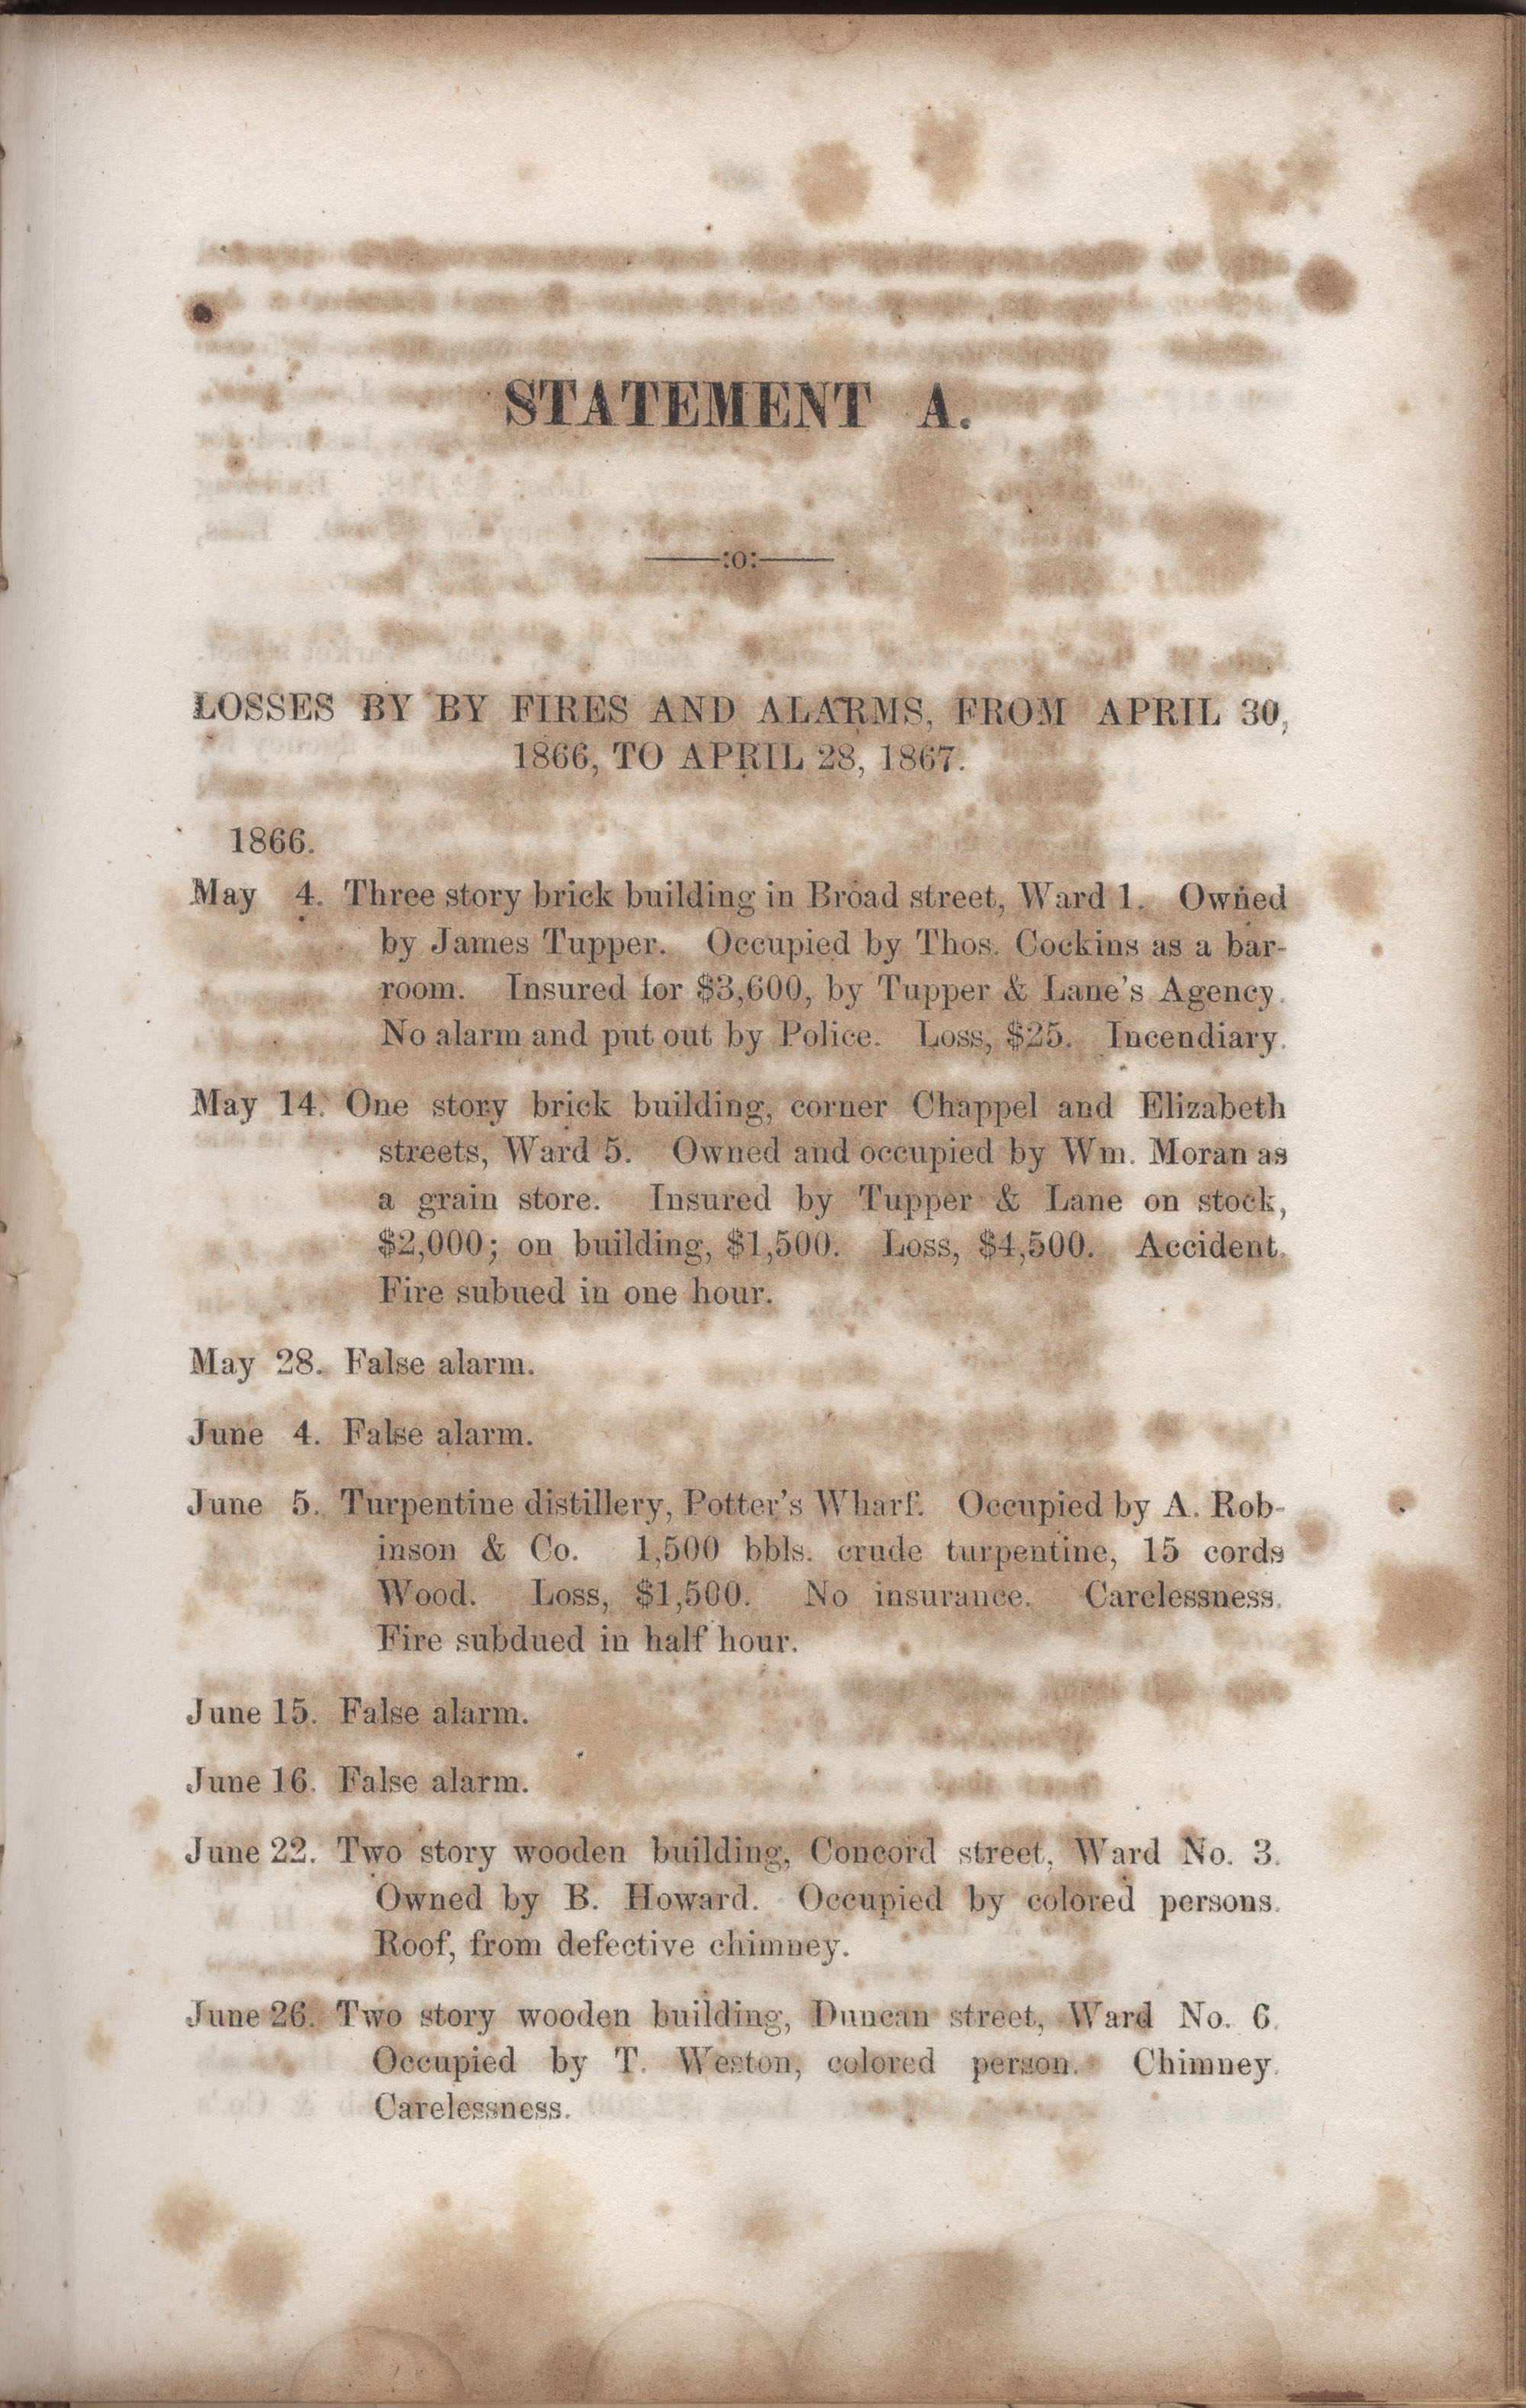 Annual Report of the Chief of the Fire Department of the City of Charleston, page 151